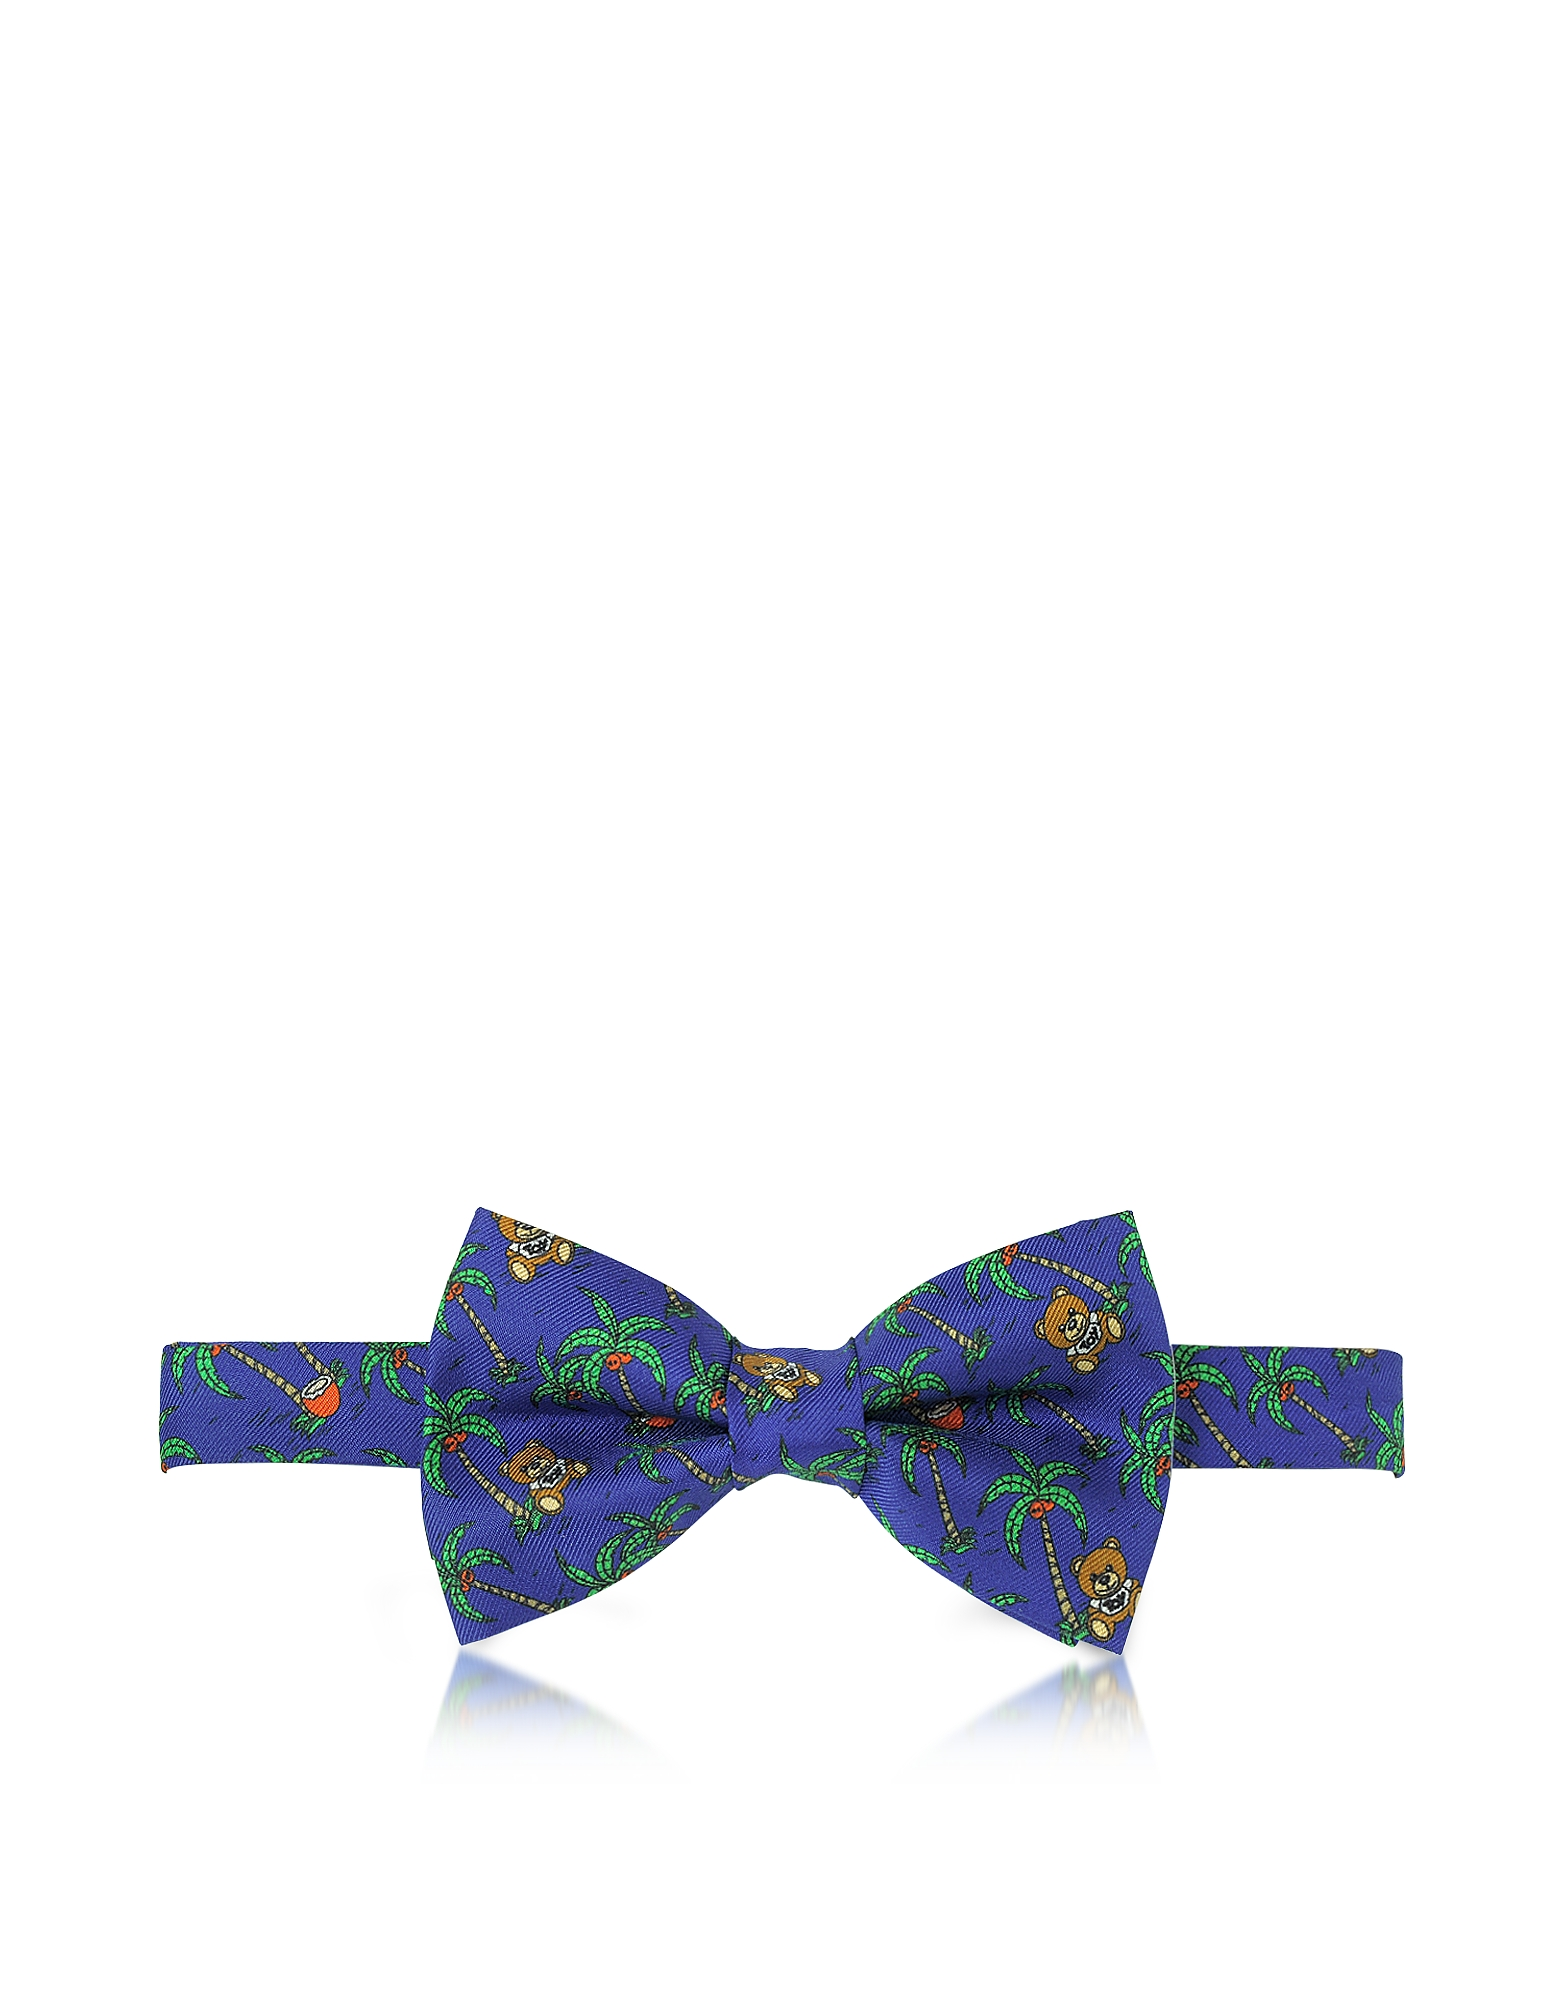 Moschino Bowties and Cummerbunds, Blue Palms and Teddy Bears Printed Twill Silk Pre Tied Bow Tie